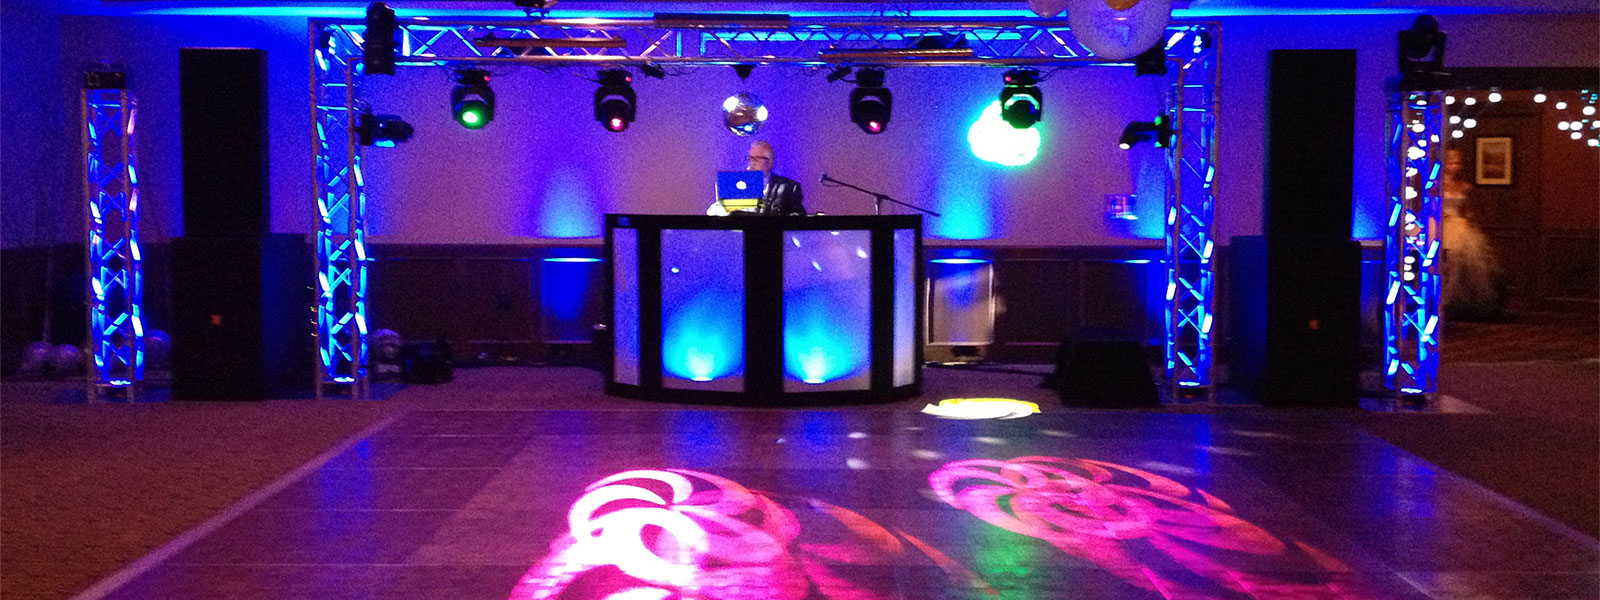 DJ for All Occasions - Party Hits Music and Light Show - Wisconsin DJ Dance Weddings Events